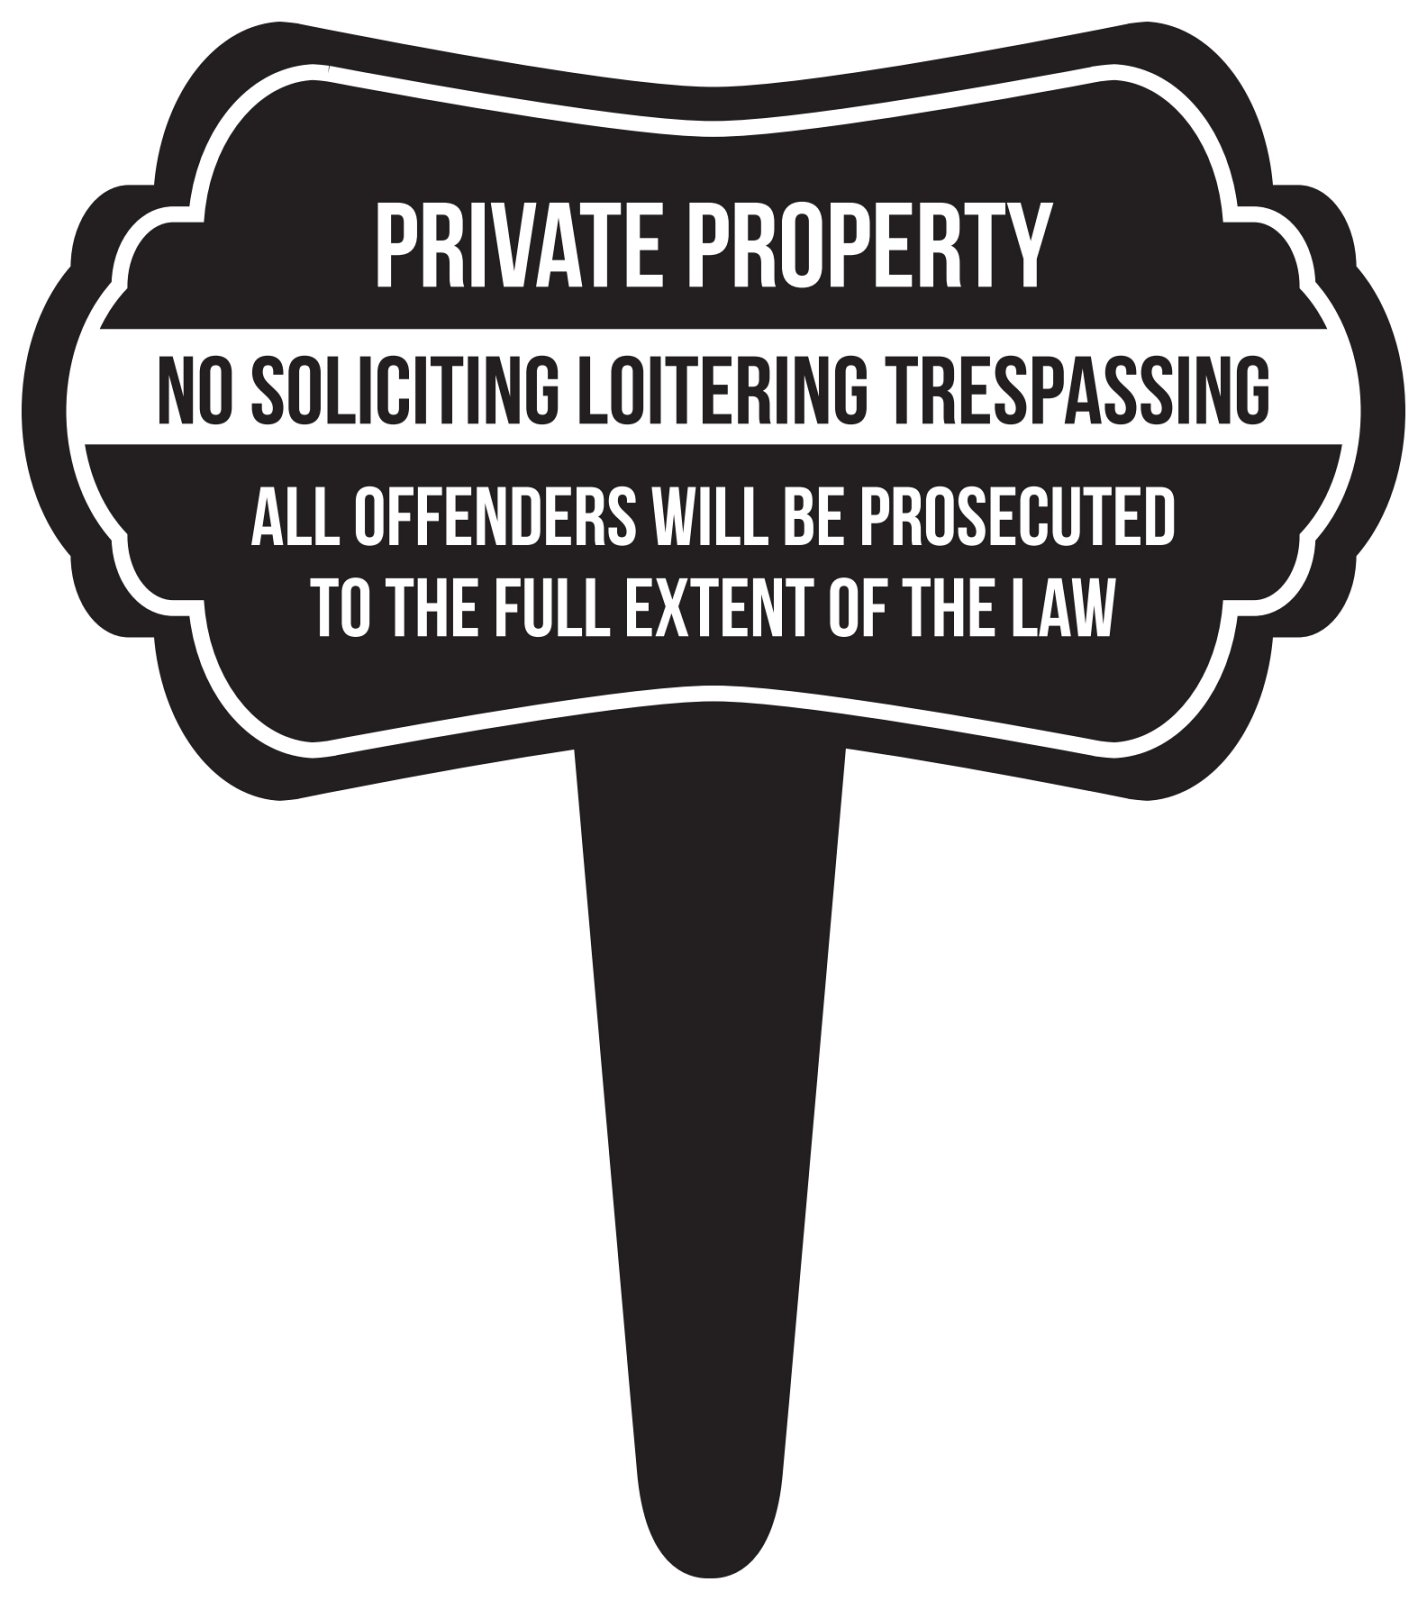 iCandy Combat Private Property No Soliciting Loitering Trespassing Home Yard Lawn Sign, Black, 16x18, Single